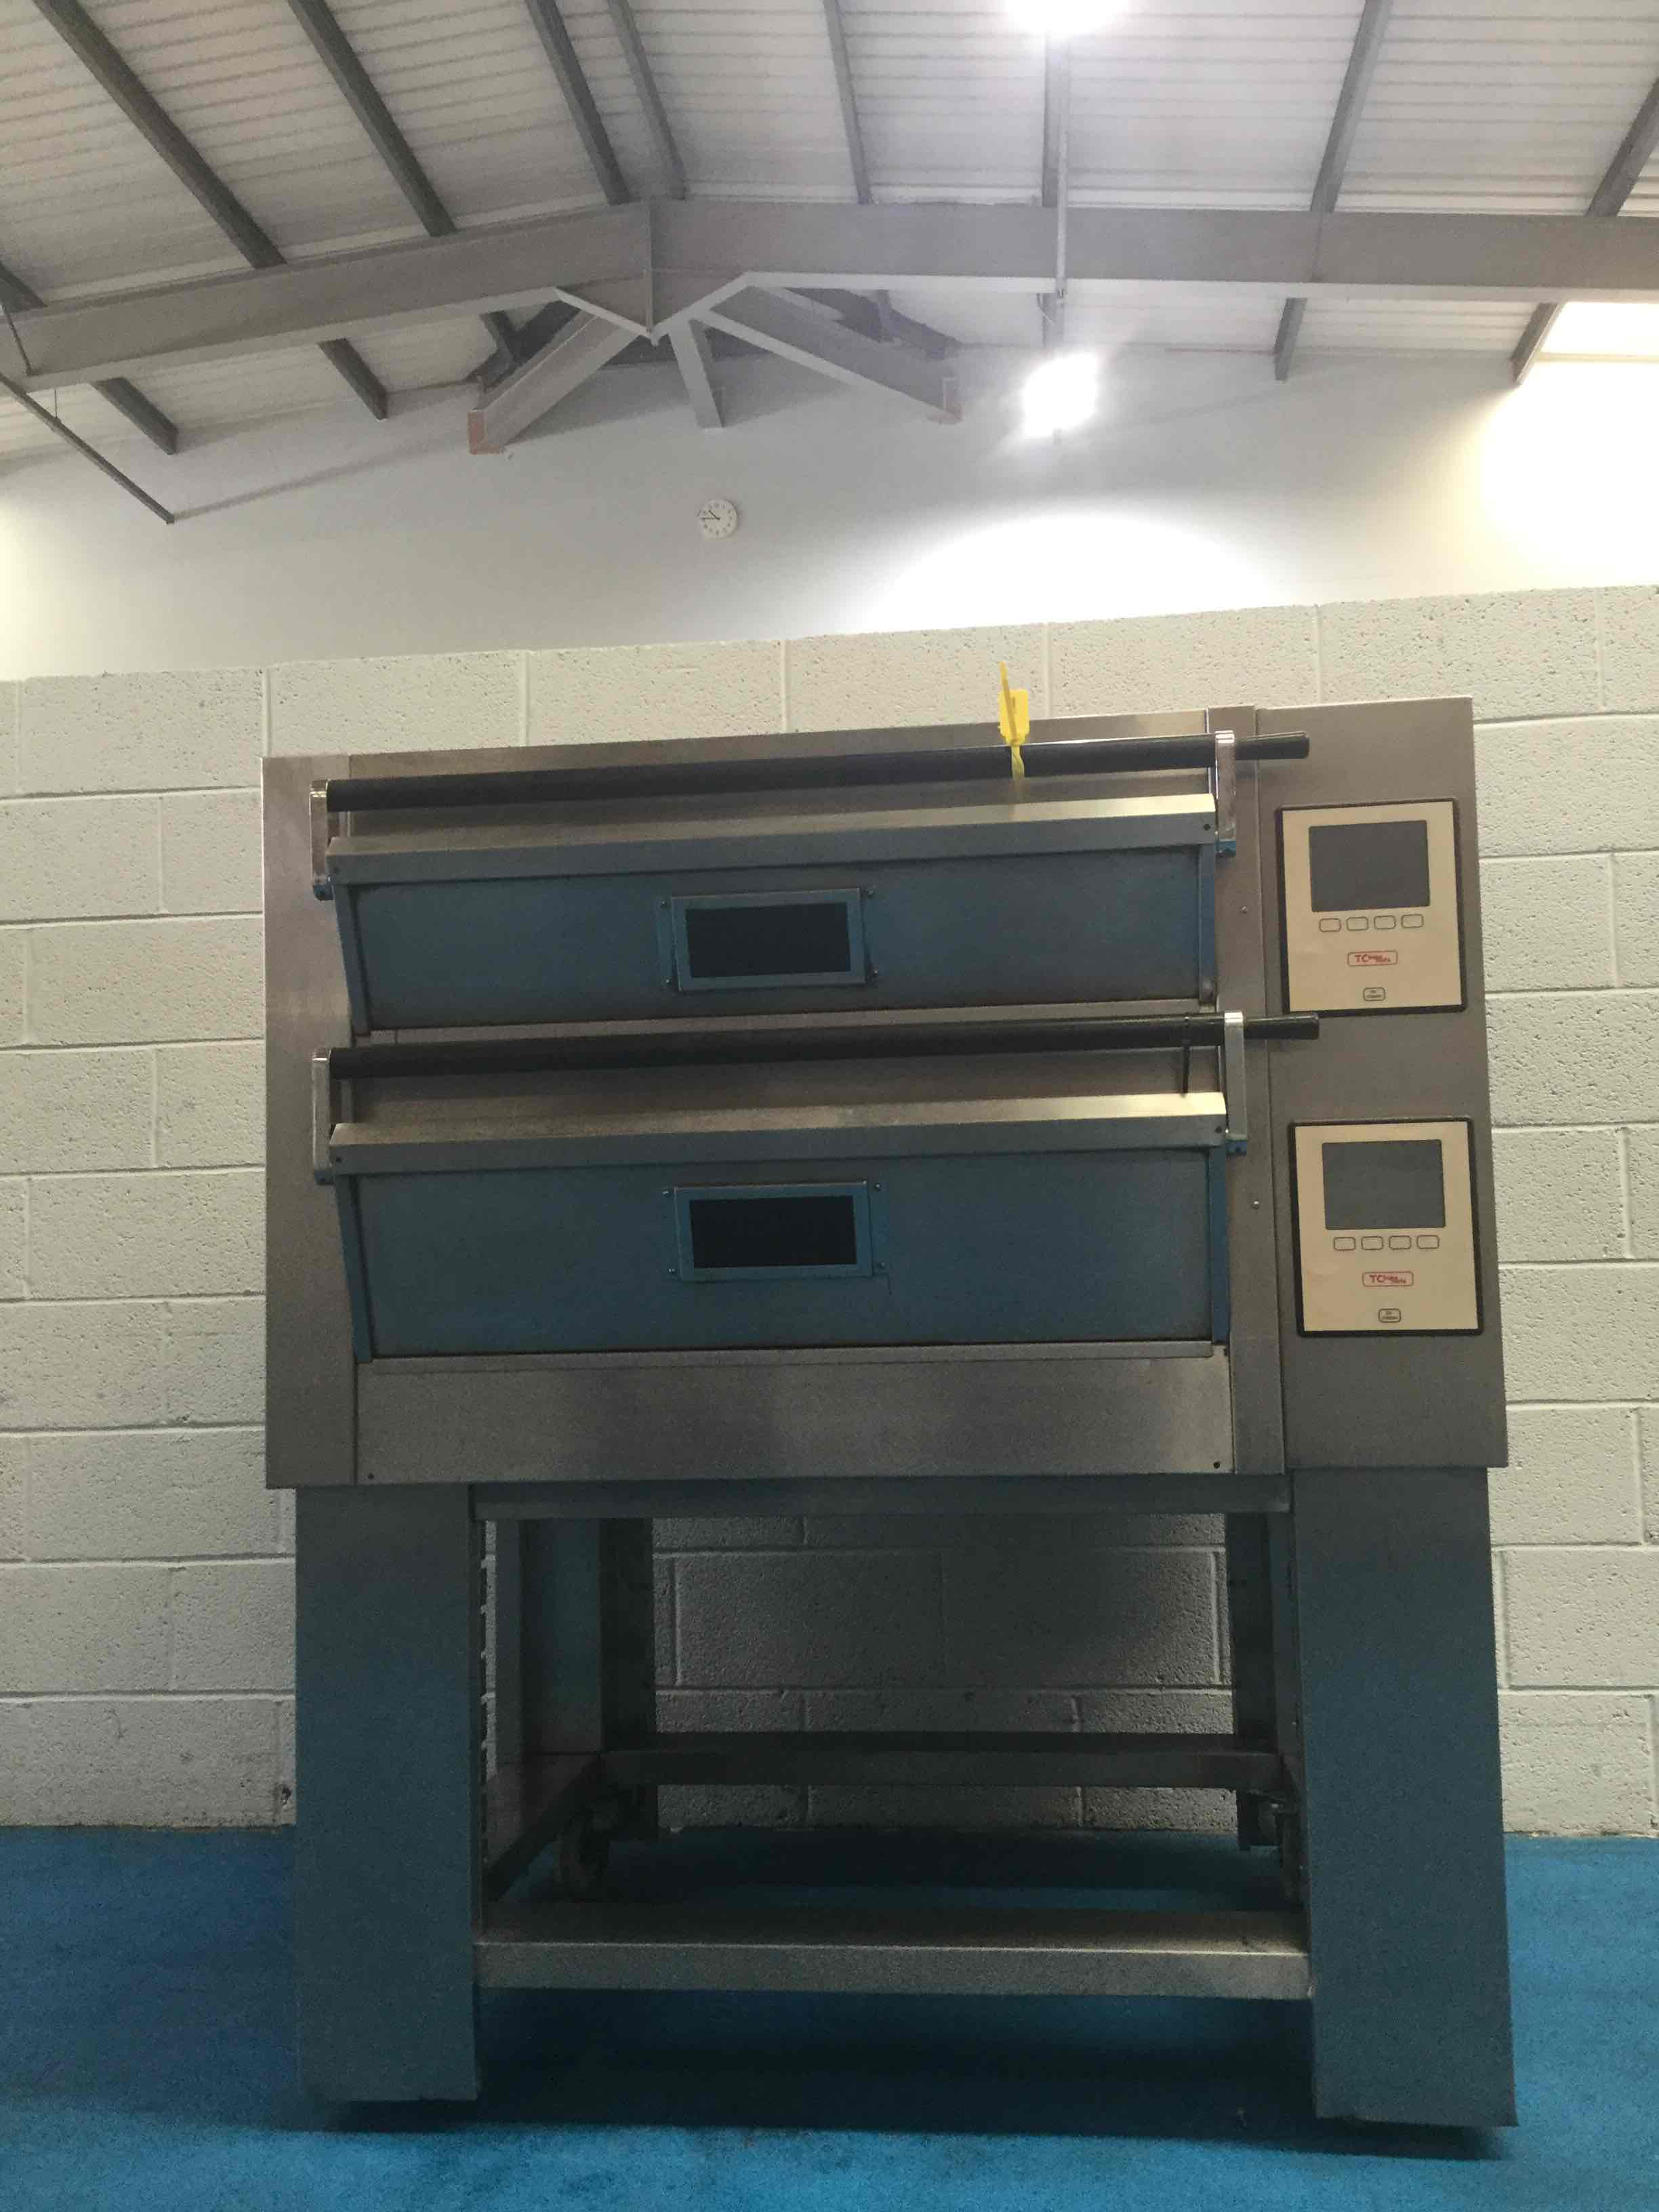 TOM CHANDLEY 4 TRAY, 2 DECK, BAKEMATE CONTROLS, STEAM